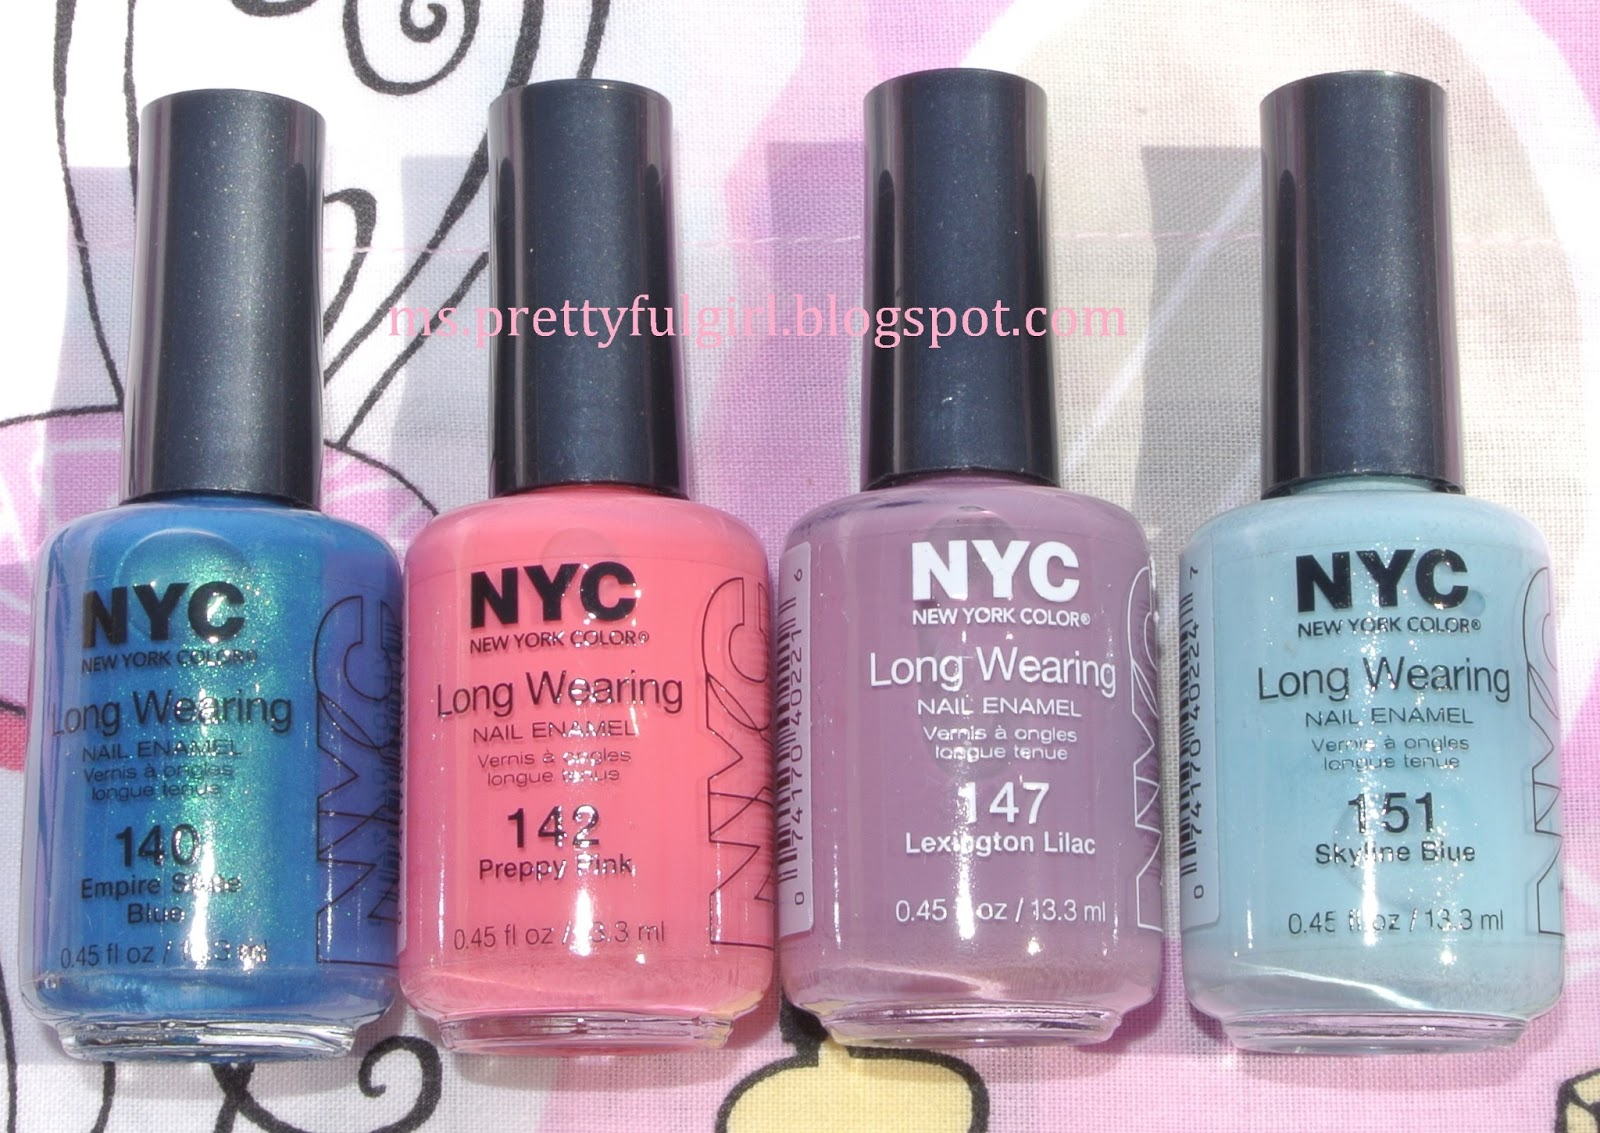 Ms. Prettyful Girl: Buy and Blog: NYC Long Wearing Nail Enamel